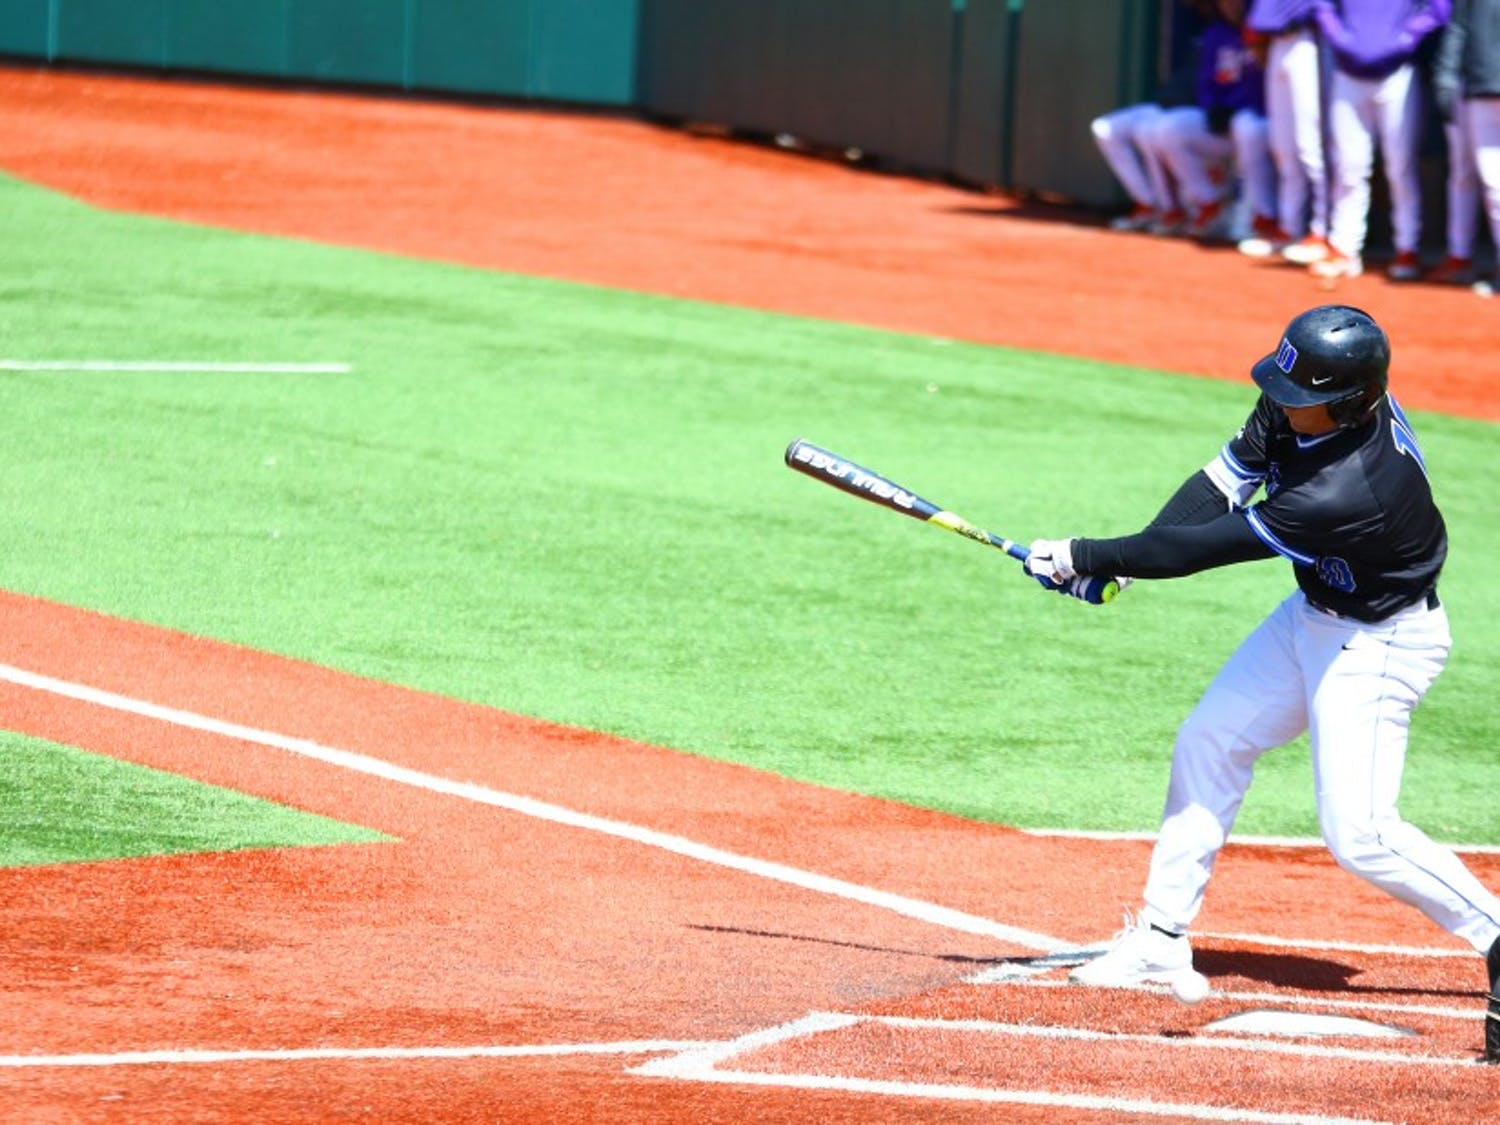 Sophomore Peter Zyla recorded four hits and three RBIs during Duke's weekend series win against then-No. 21 Clemson.